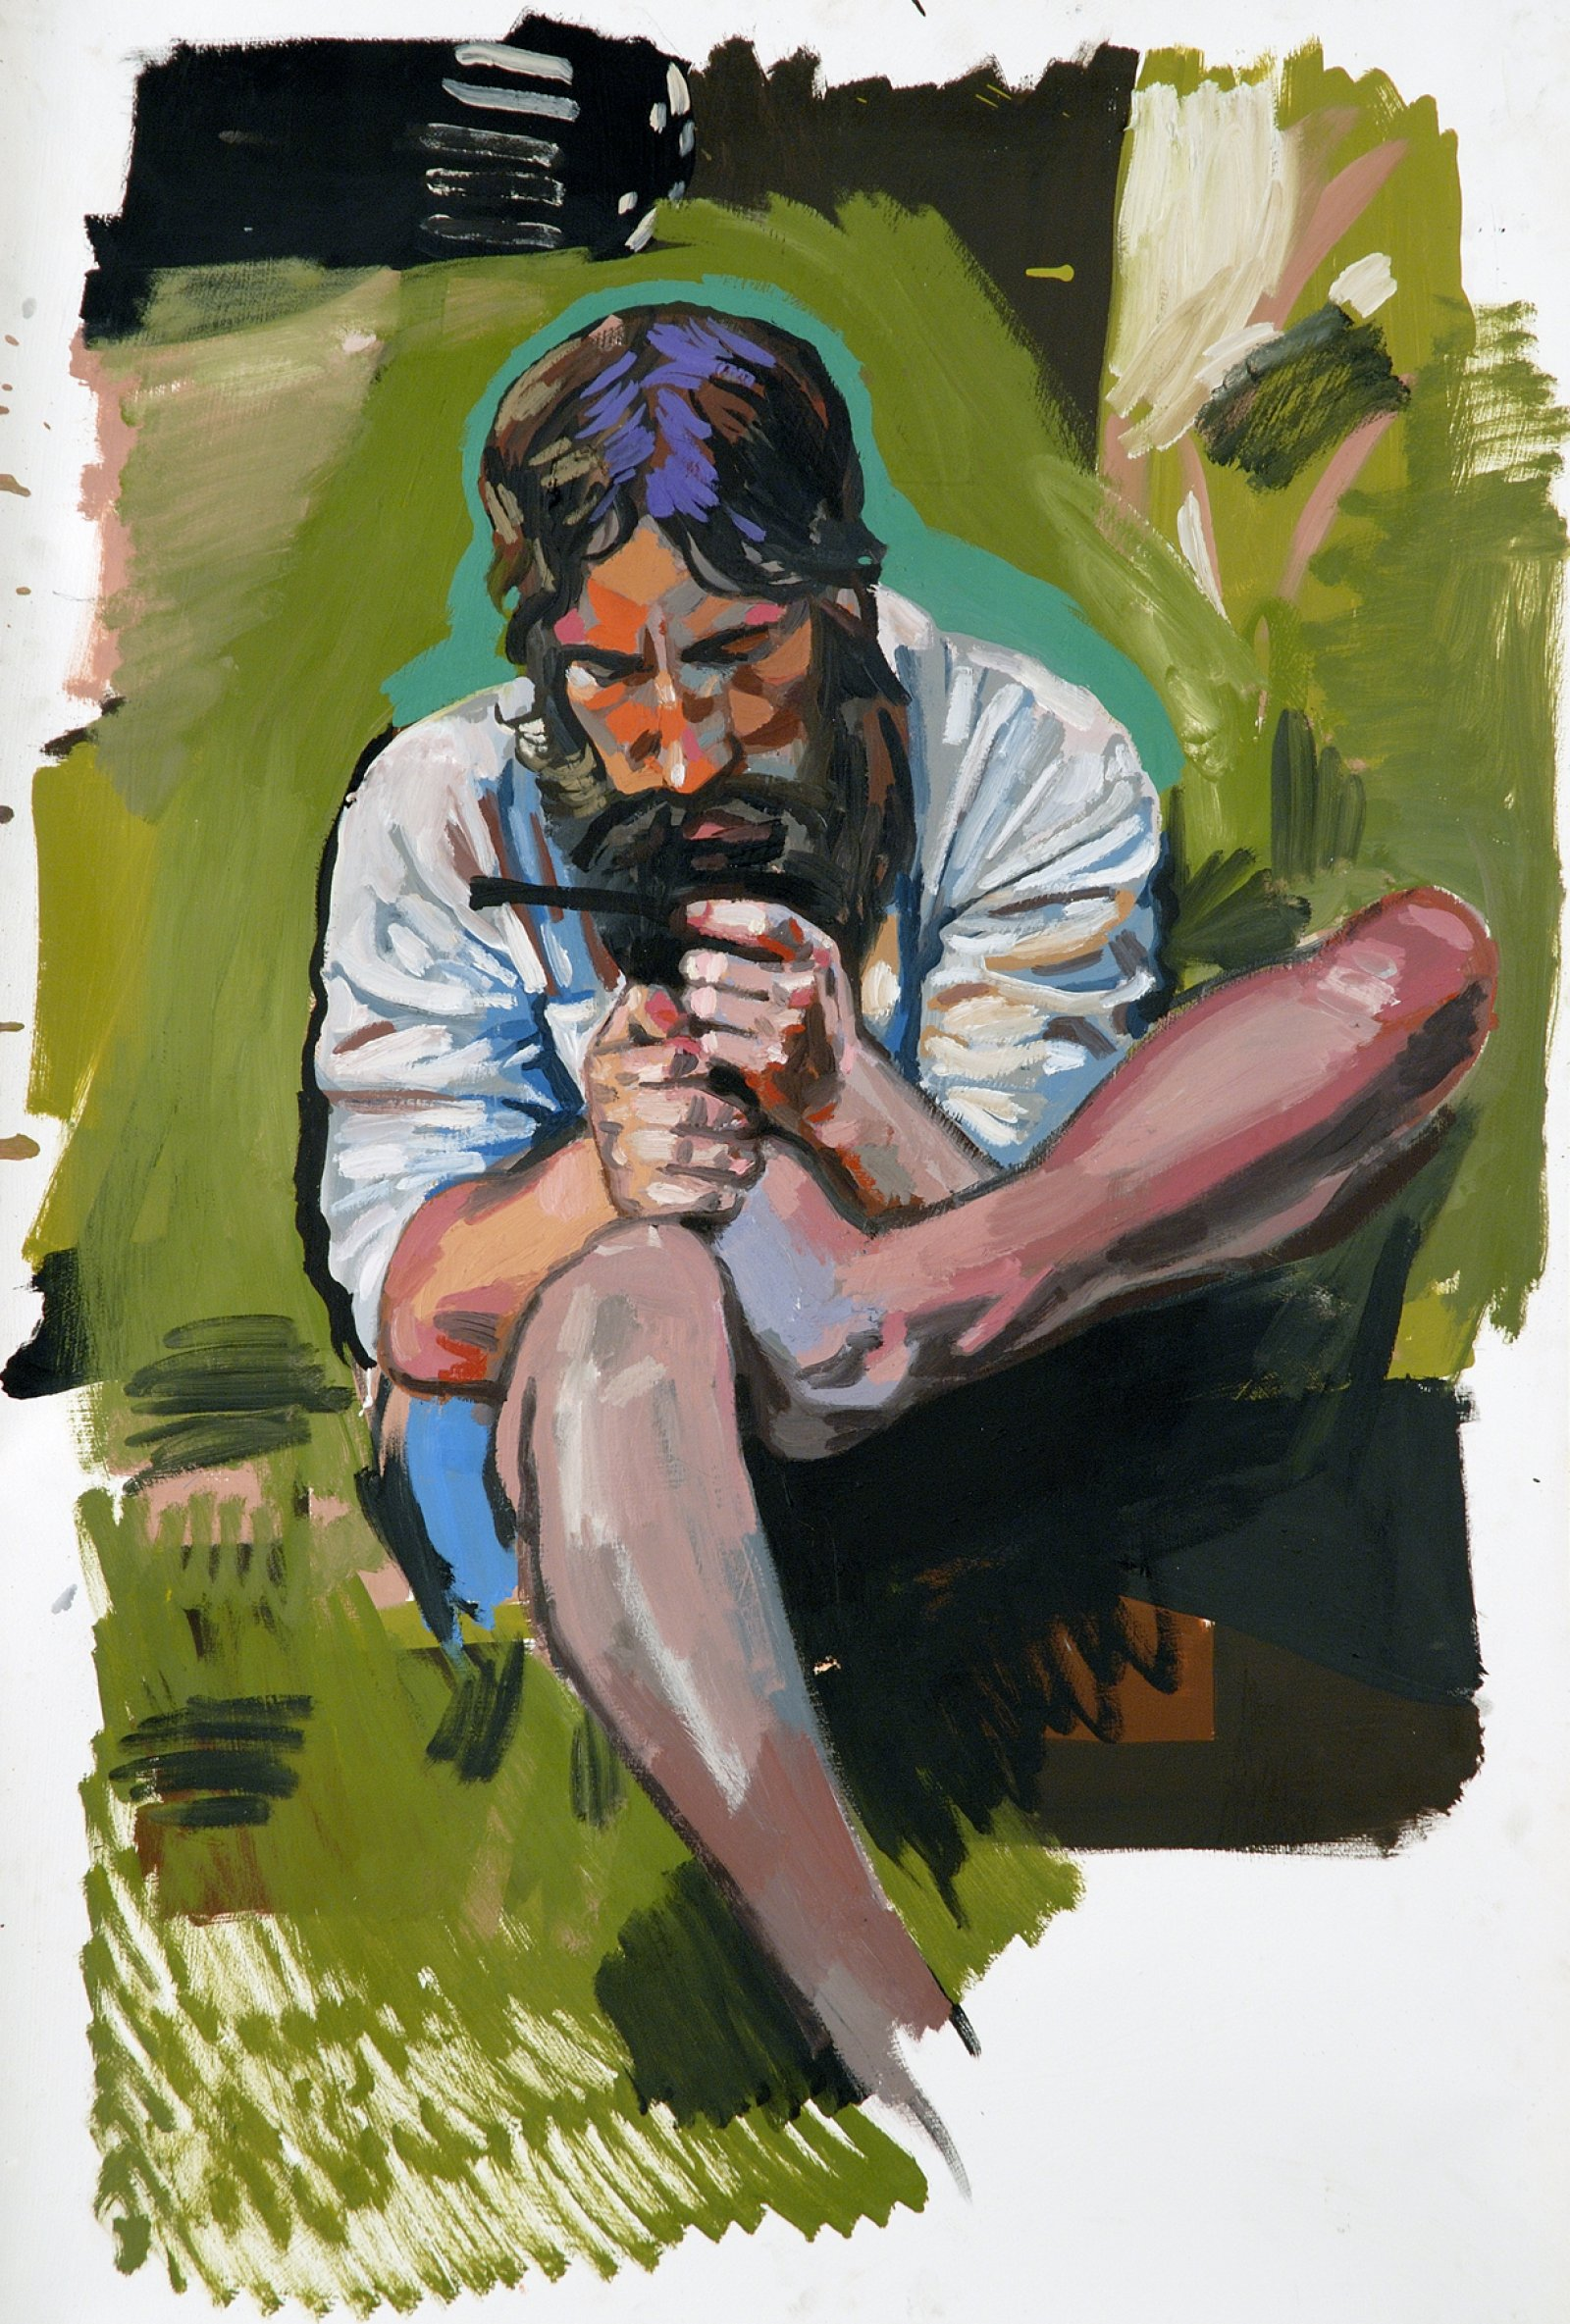 Damian Moppett, 1815/1962 Self Portrait, 2006, oil on paper, 52 x 37 in. (132 x 93 cm) by Damian Moppett